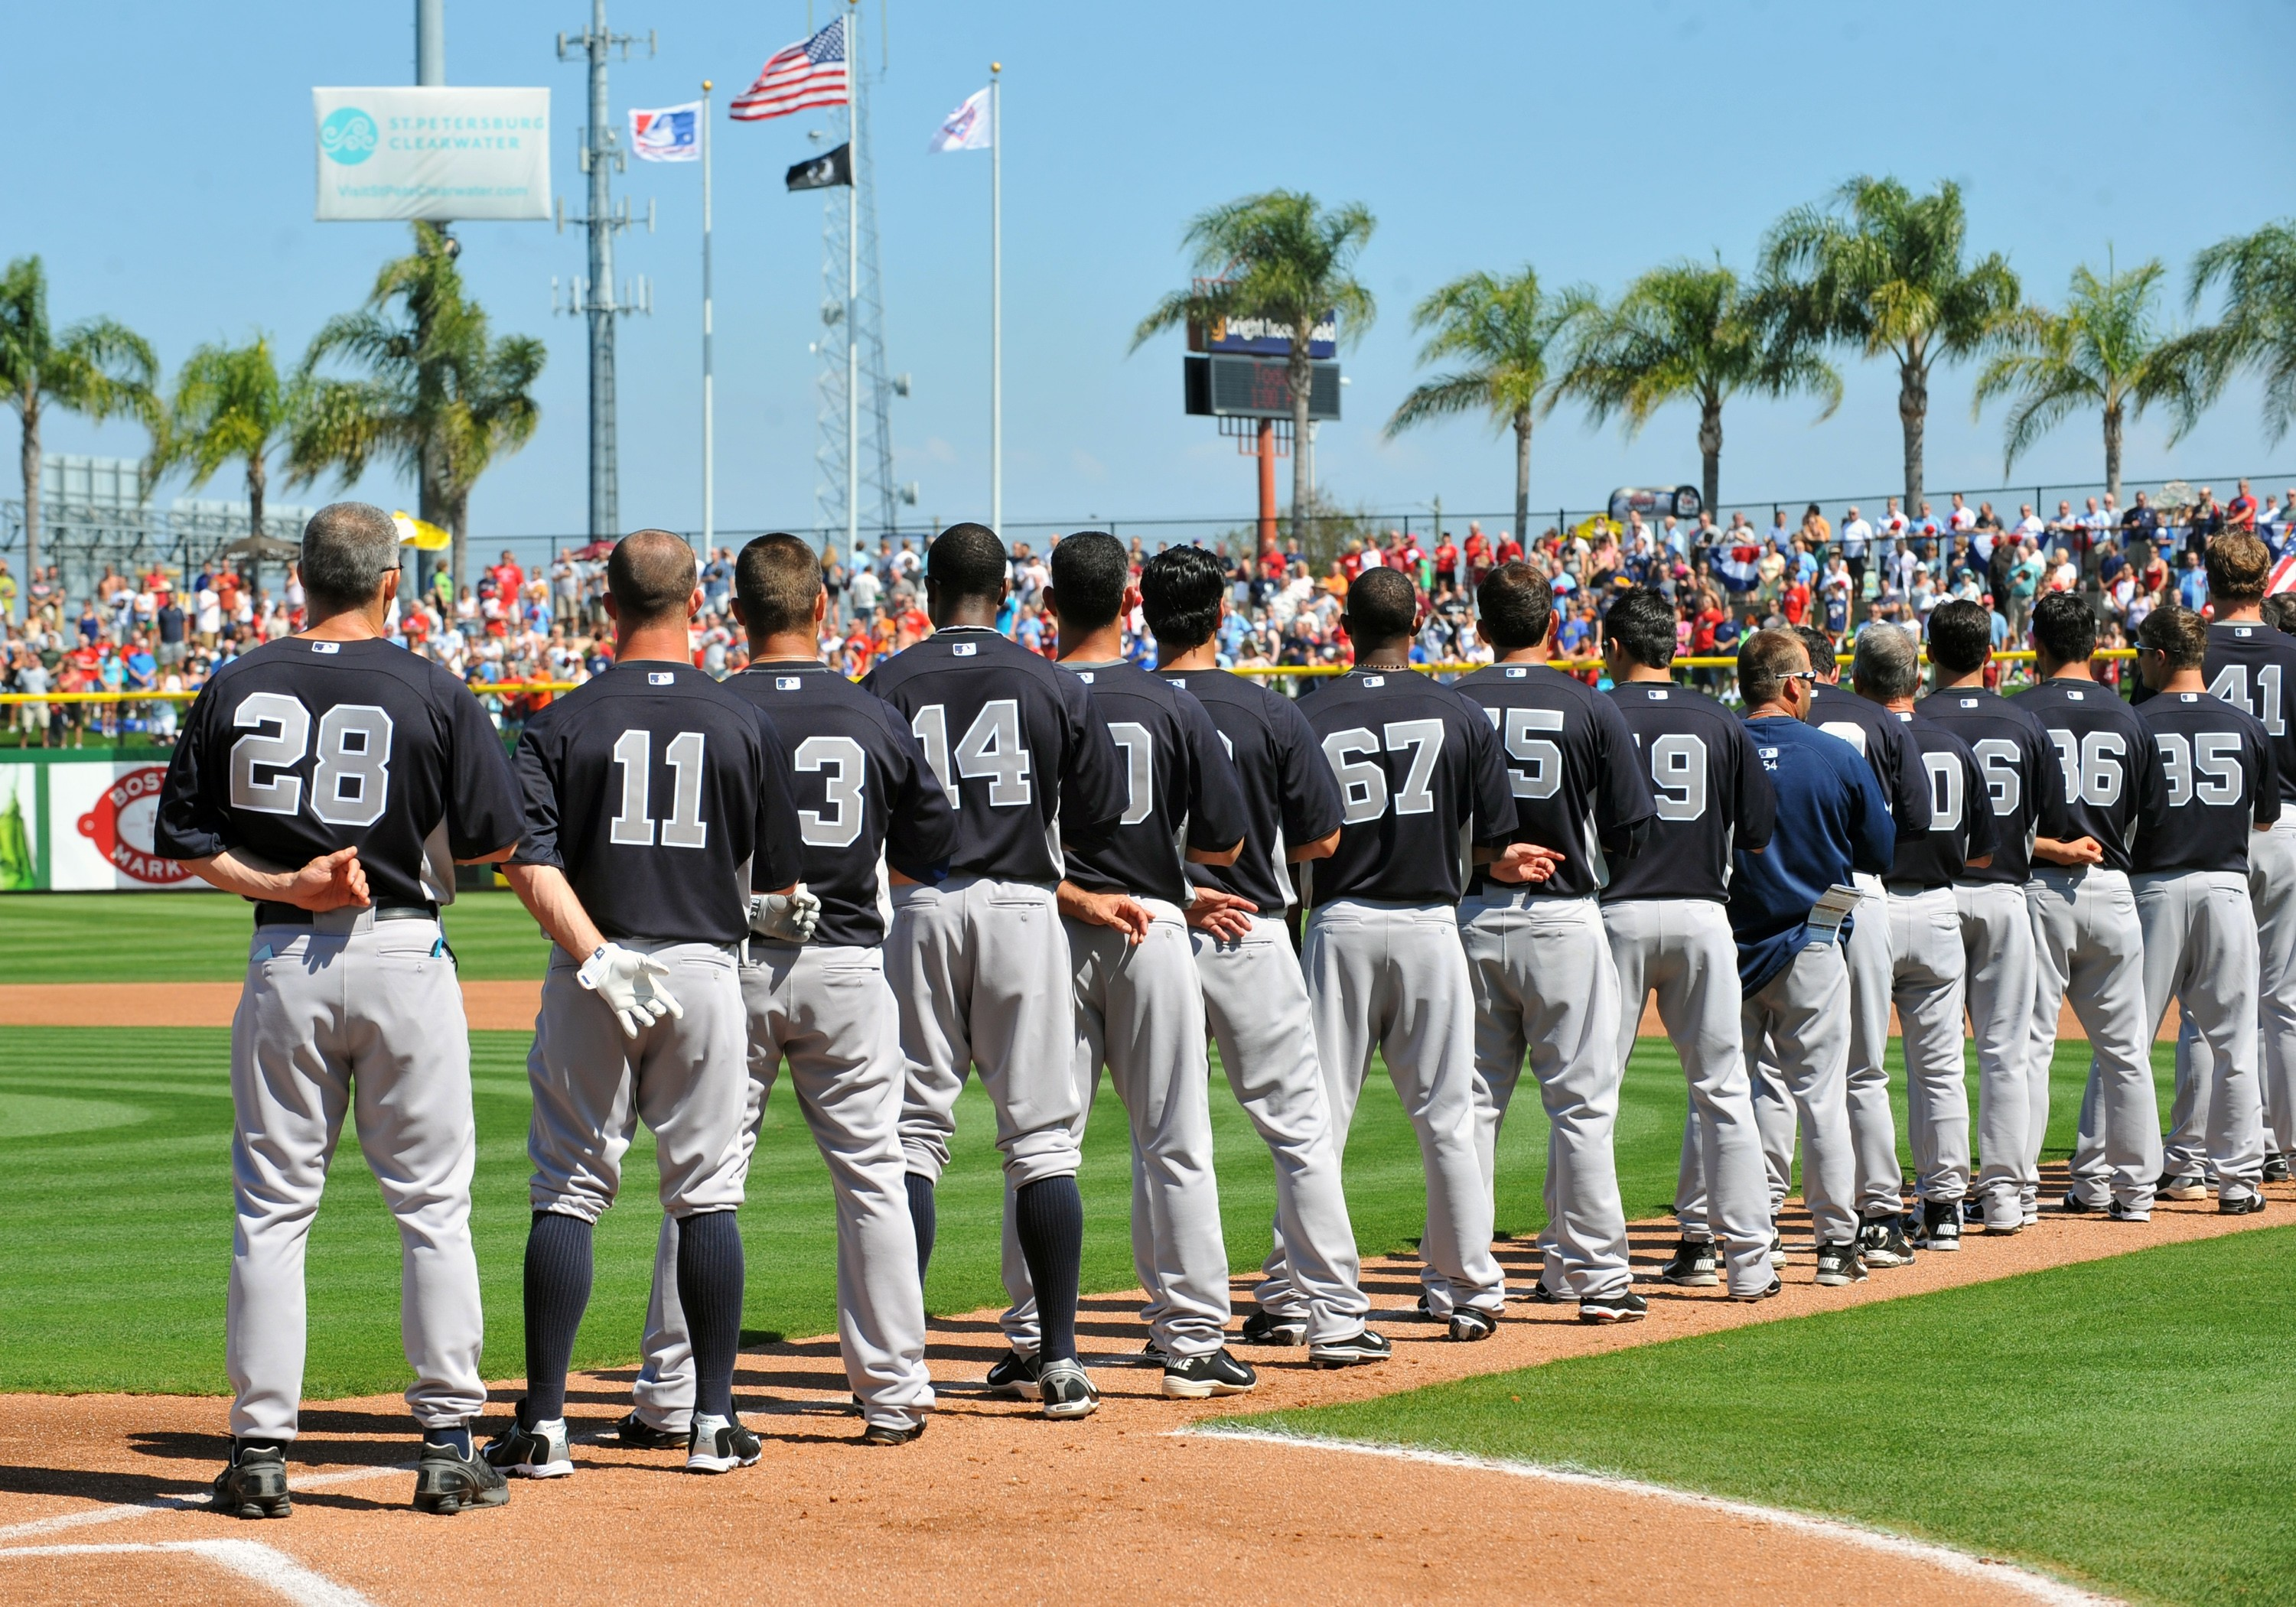 … new york yankees wallpapers images photos pictures backgrounds …